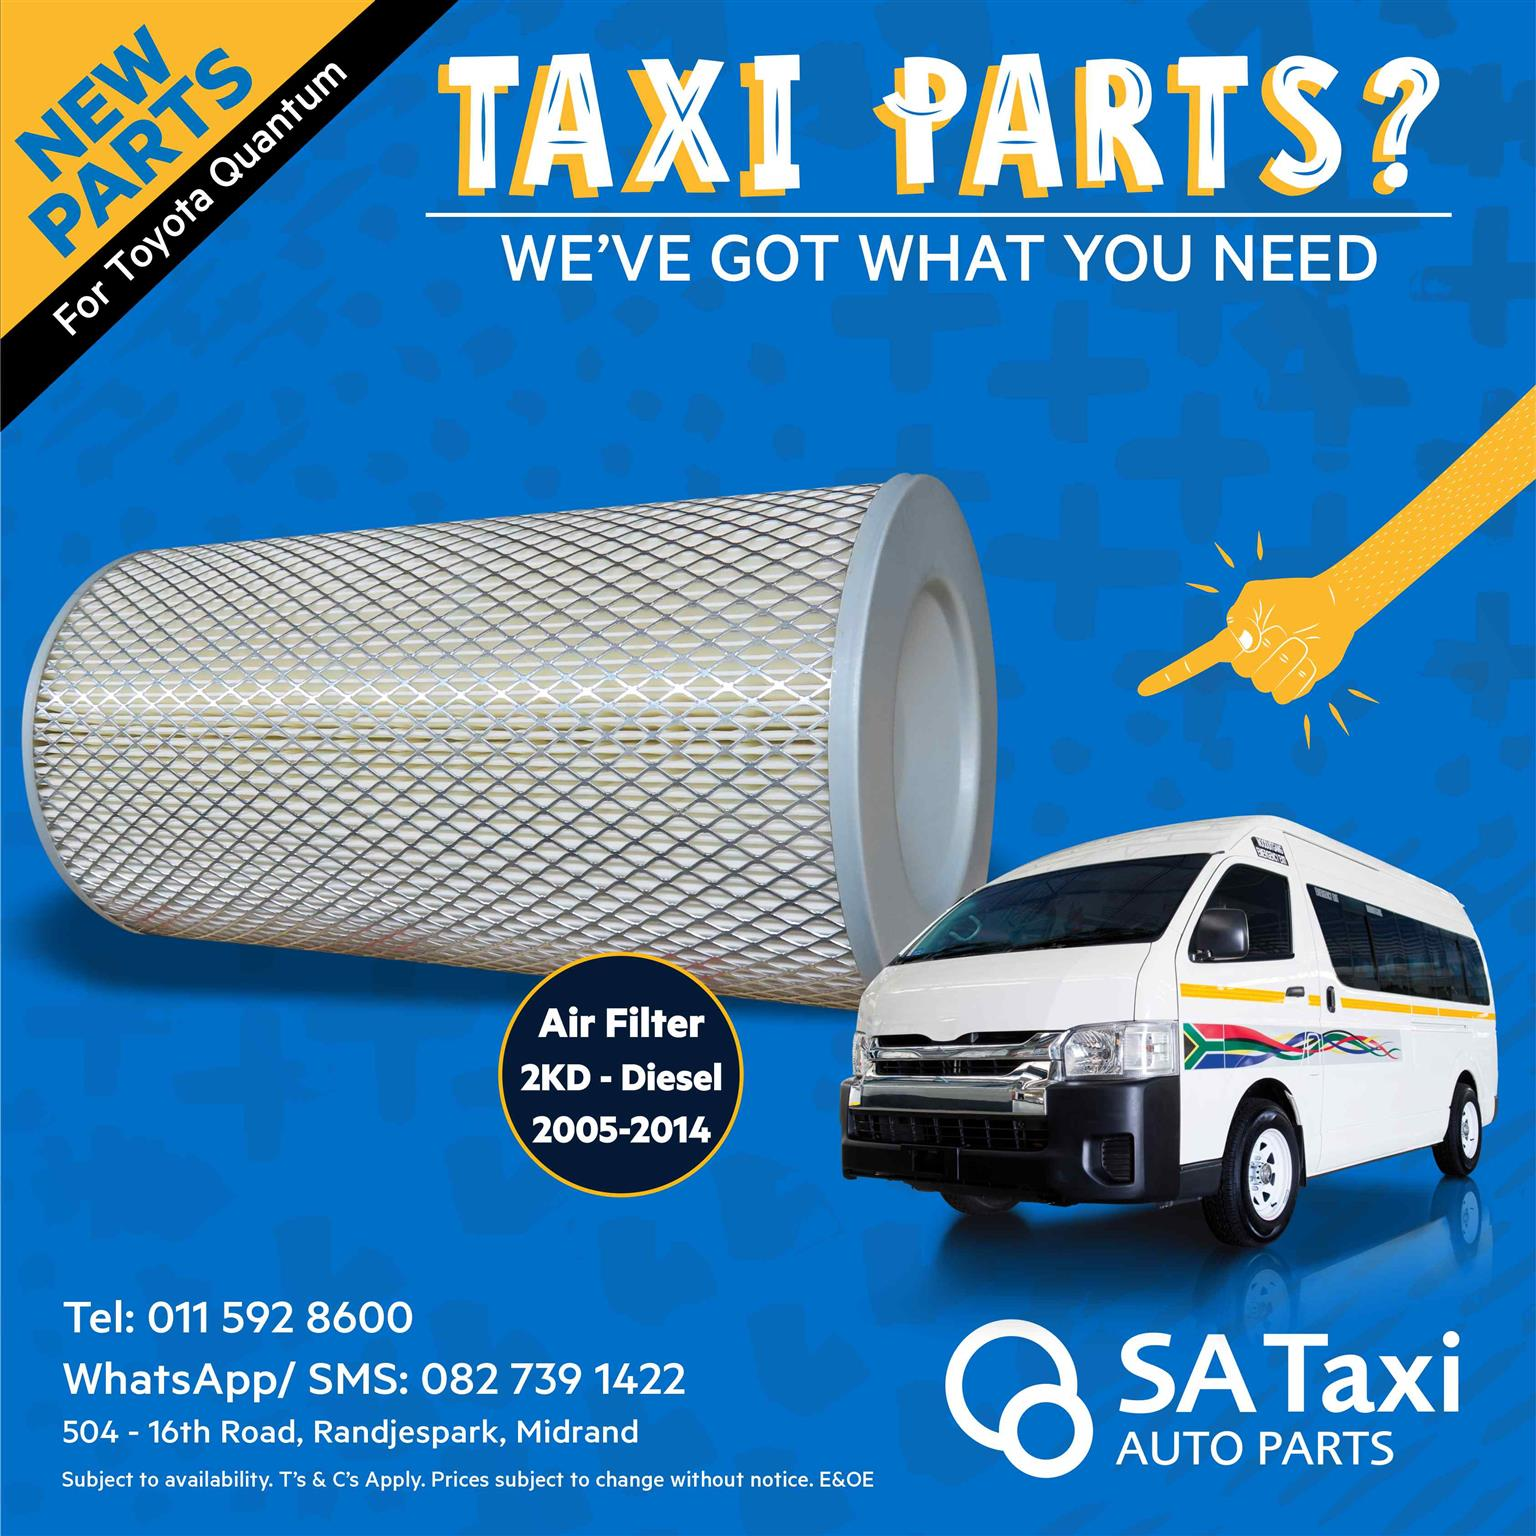 2KD Air Filter 2005-14 Diesel suitable for Toyota Quantum - SA Taxi Auto Parts quality NEW spares